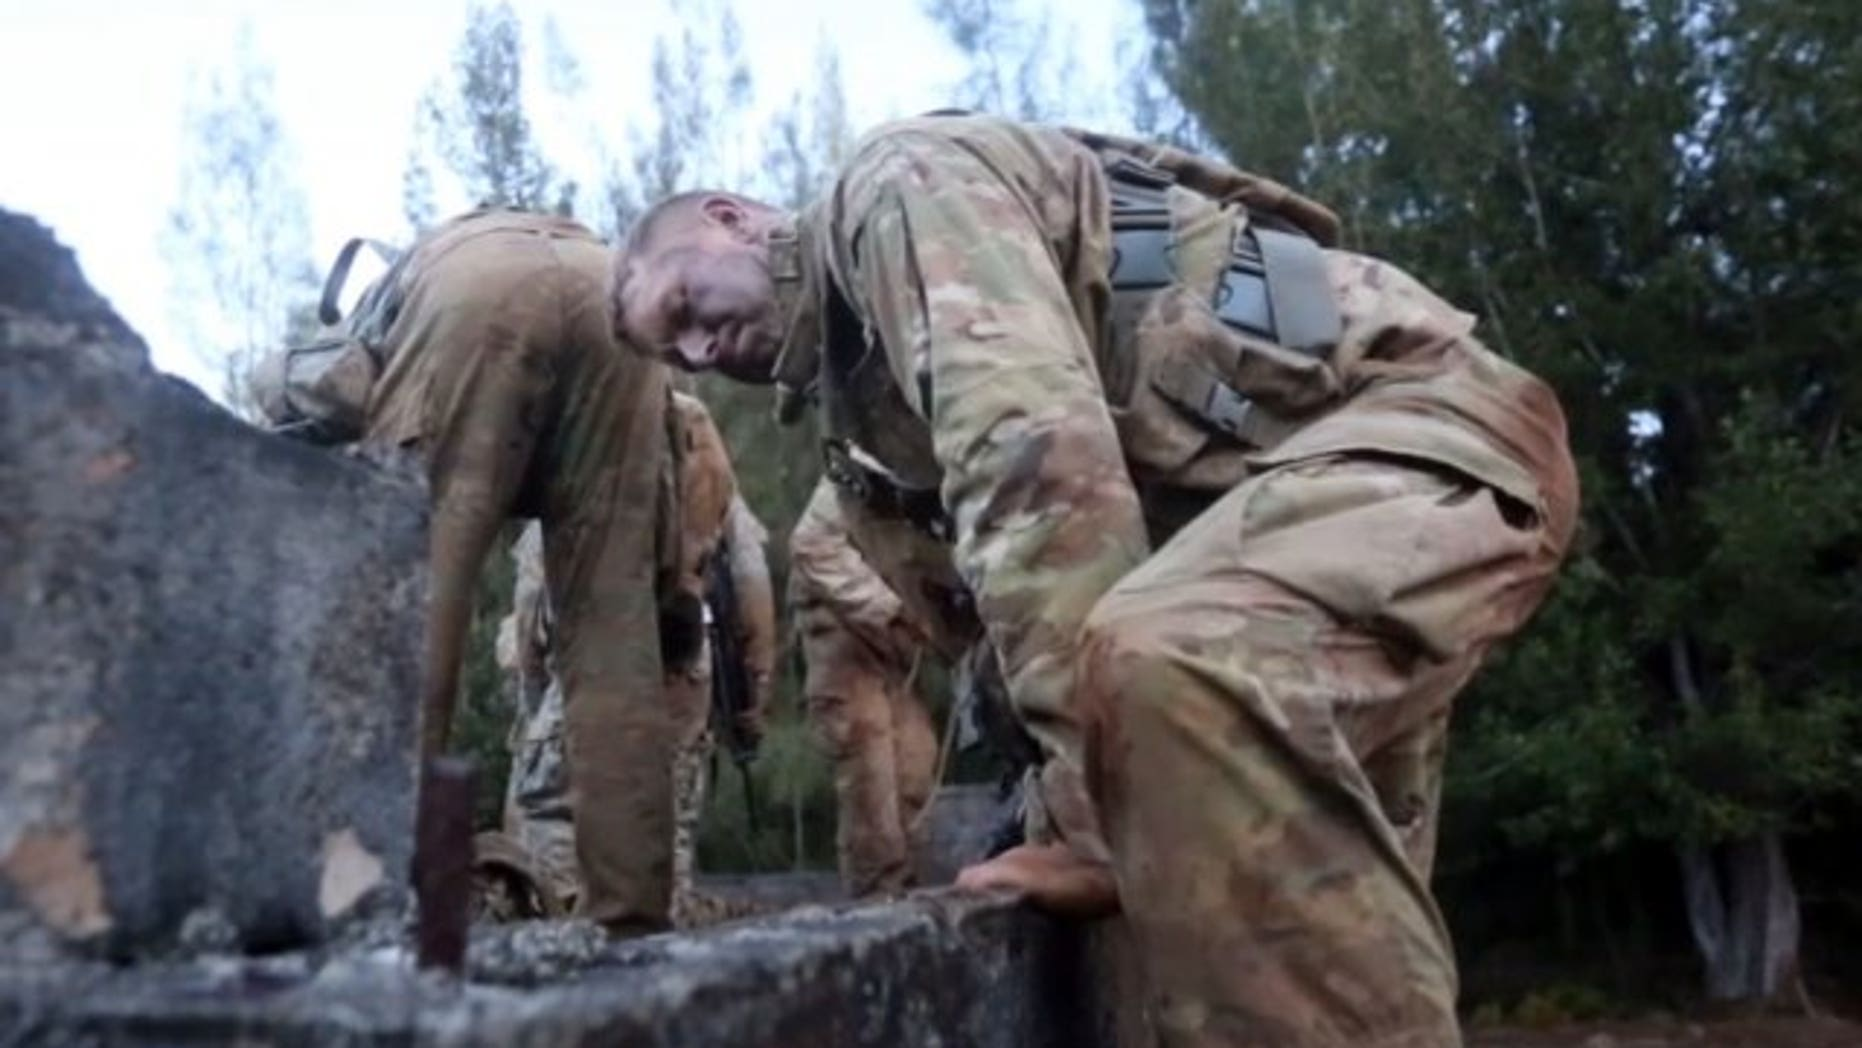 Soldiers with the 25th Infantry Division in Hawaii tackle obstacles in February 2017, while evaluating a new, lighter weight uniform. (U.S. Army photo )